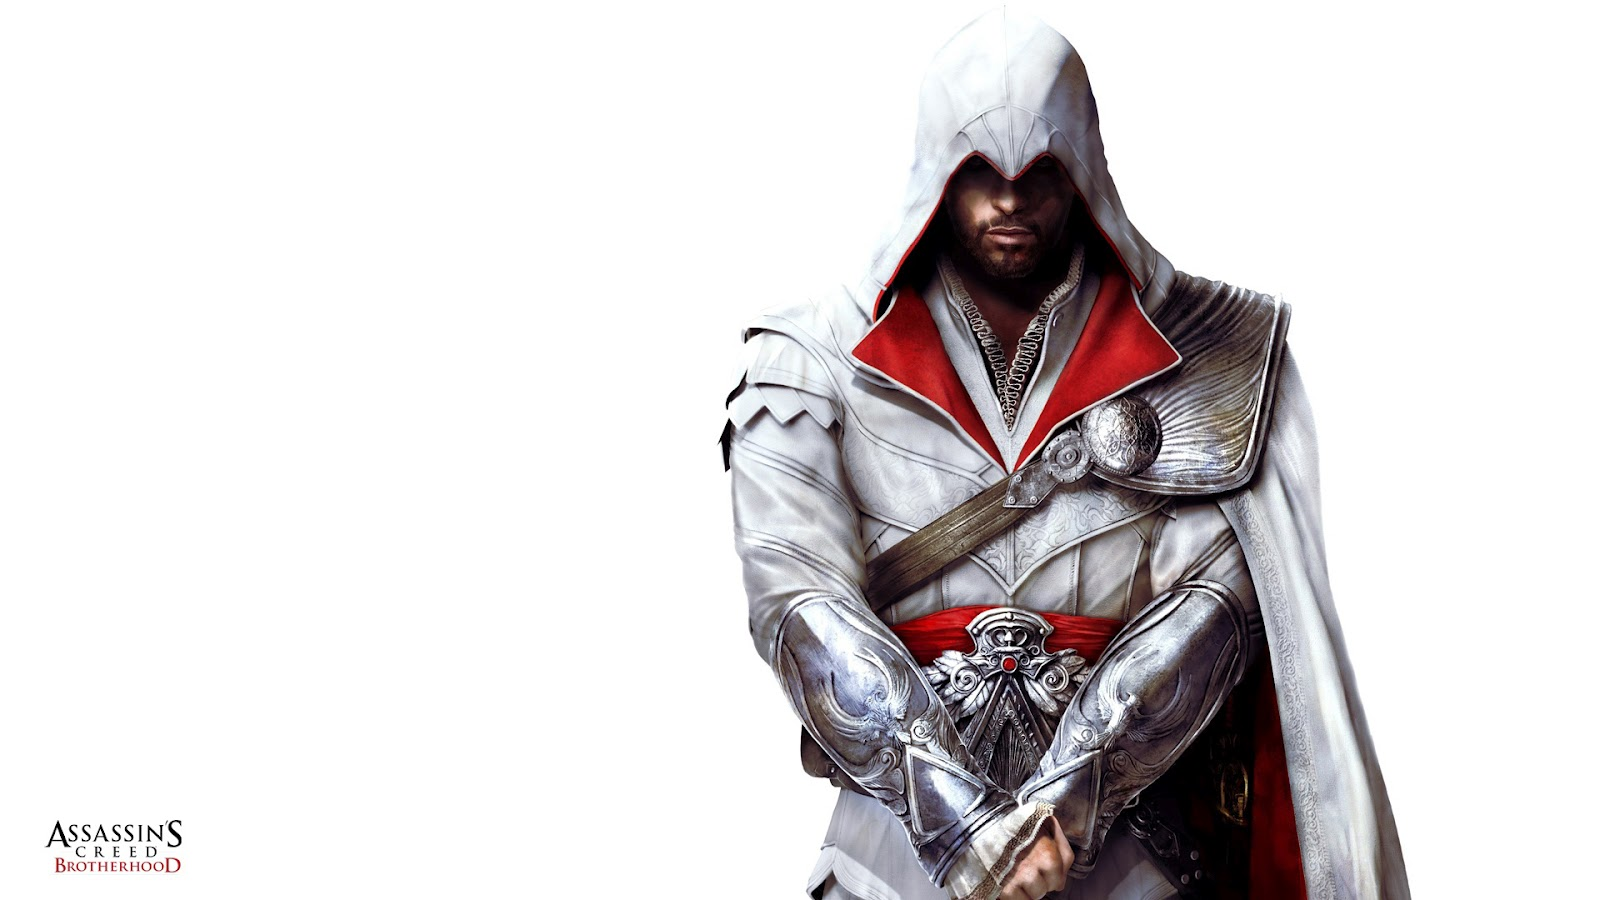 http://3.bp.blogspot.com/-JXkNV329Gko/UA1kYy9uUuI/AAAAAAAAAsI/zCeU-7EUomA/s1600/assassins_creed_brotherhood_02-1920x1080.jpg